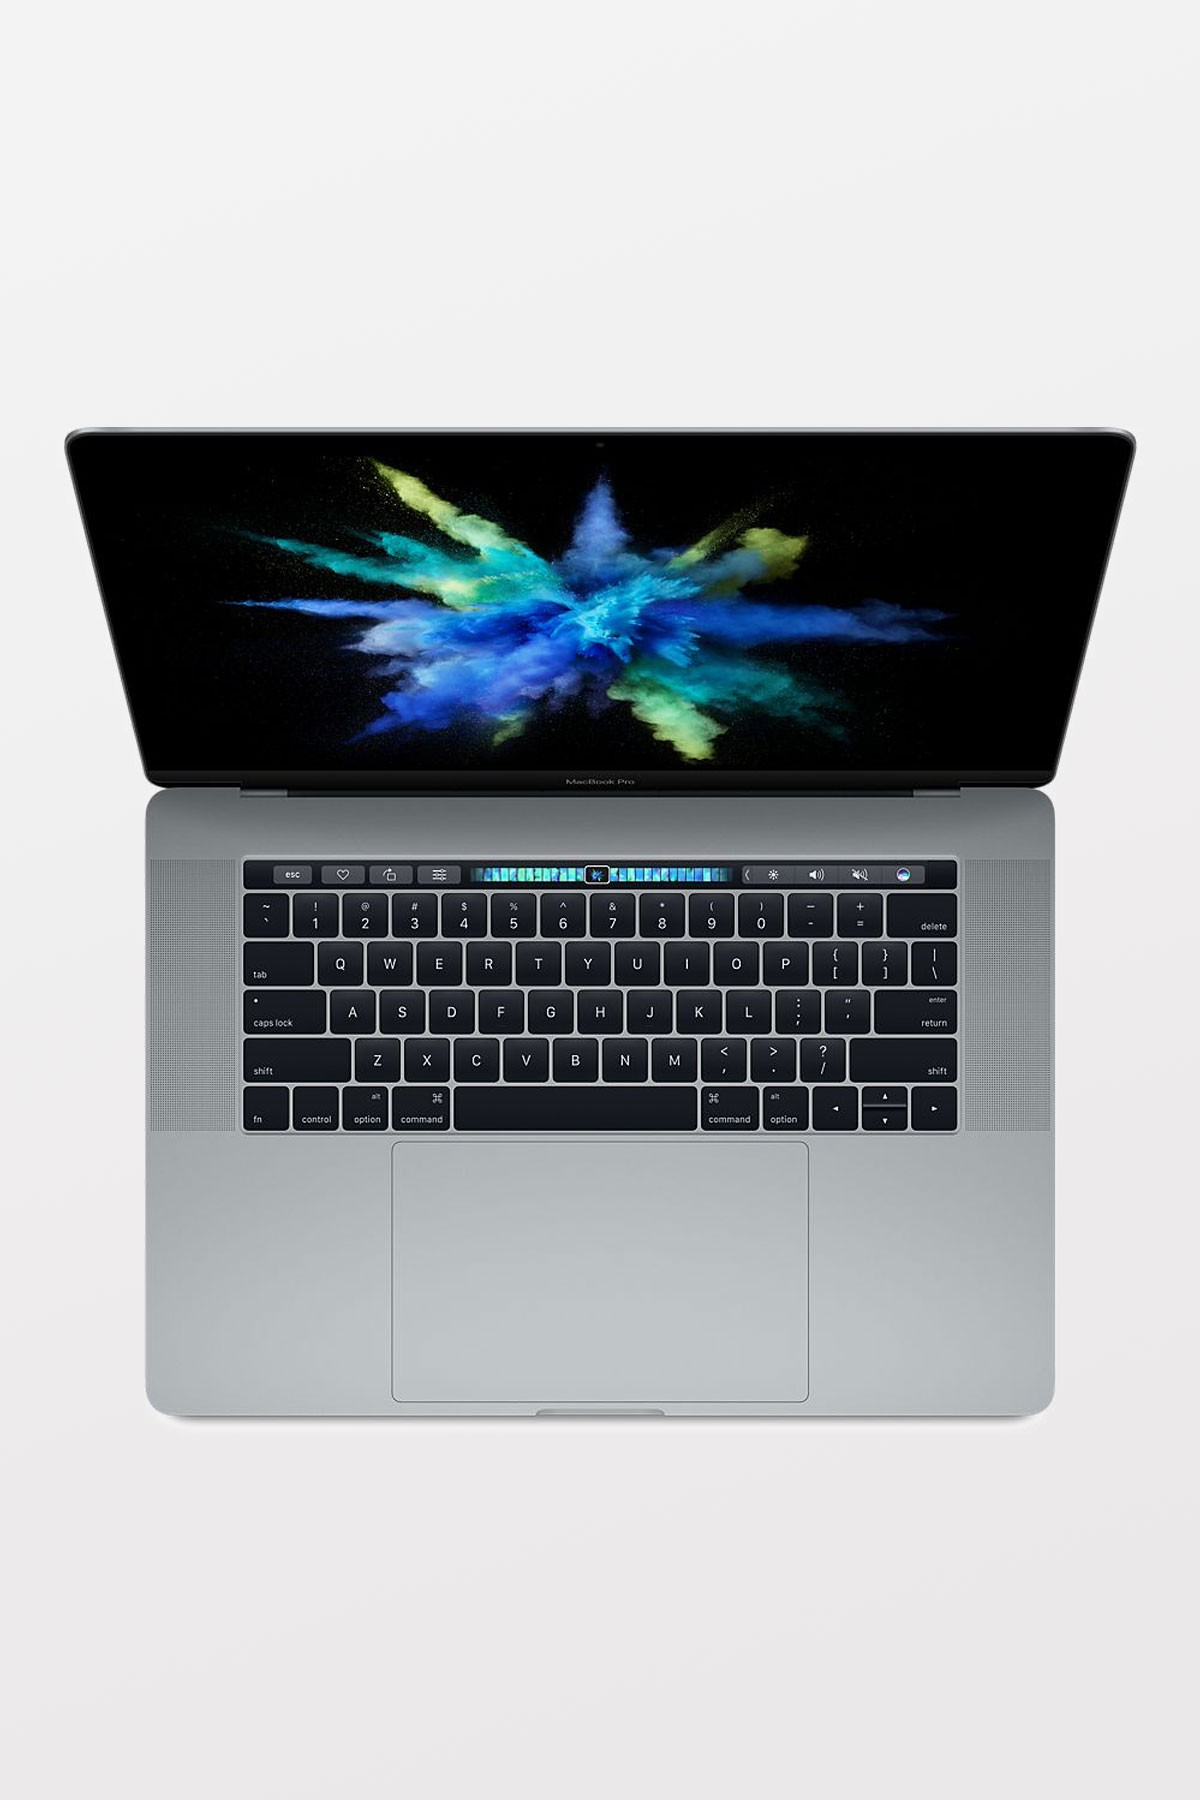 Apple MacBook Pro with Touch Bar 15-inch (2.9GHz i7/16GB/512GB Flash/Radeon Pro 560 4GB) - Space Grey